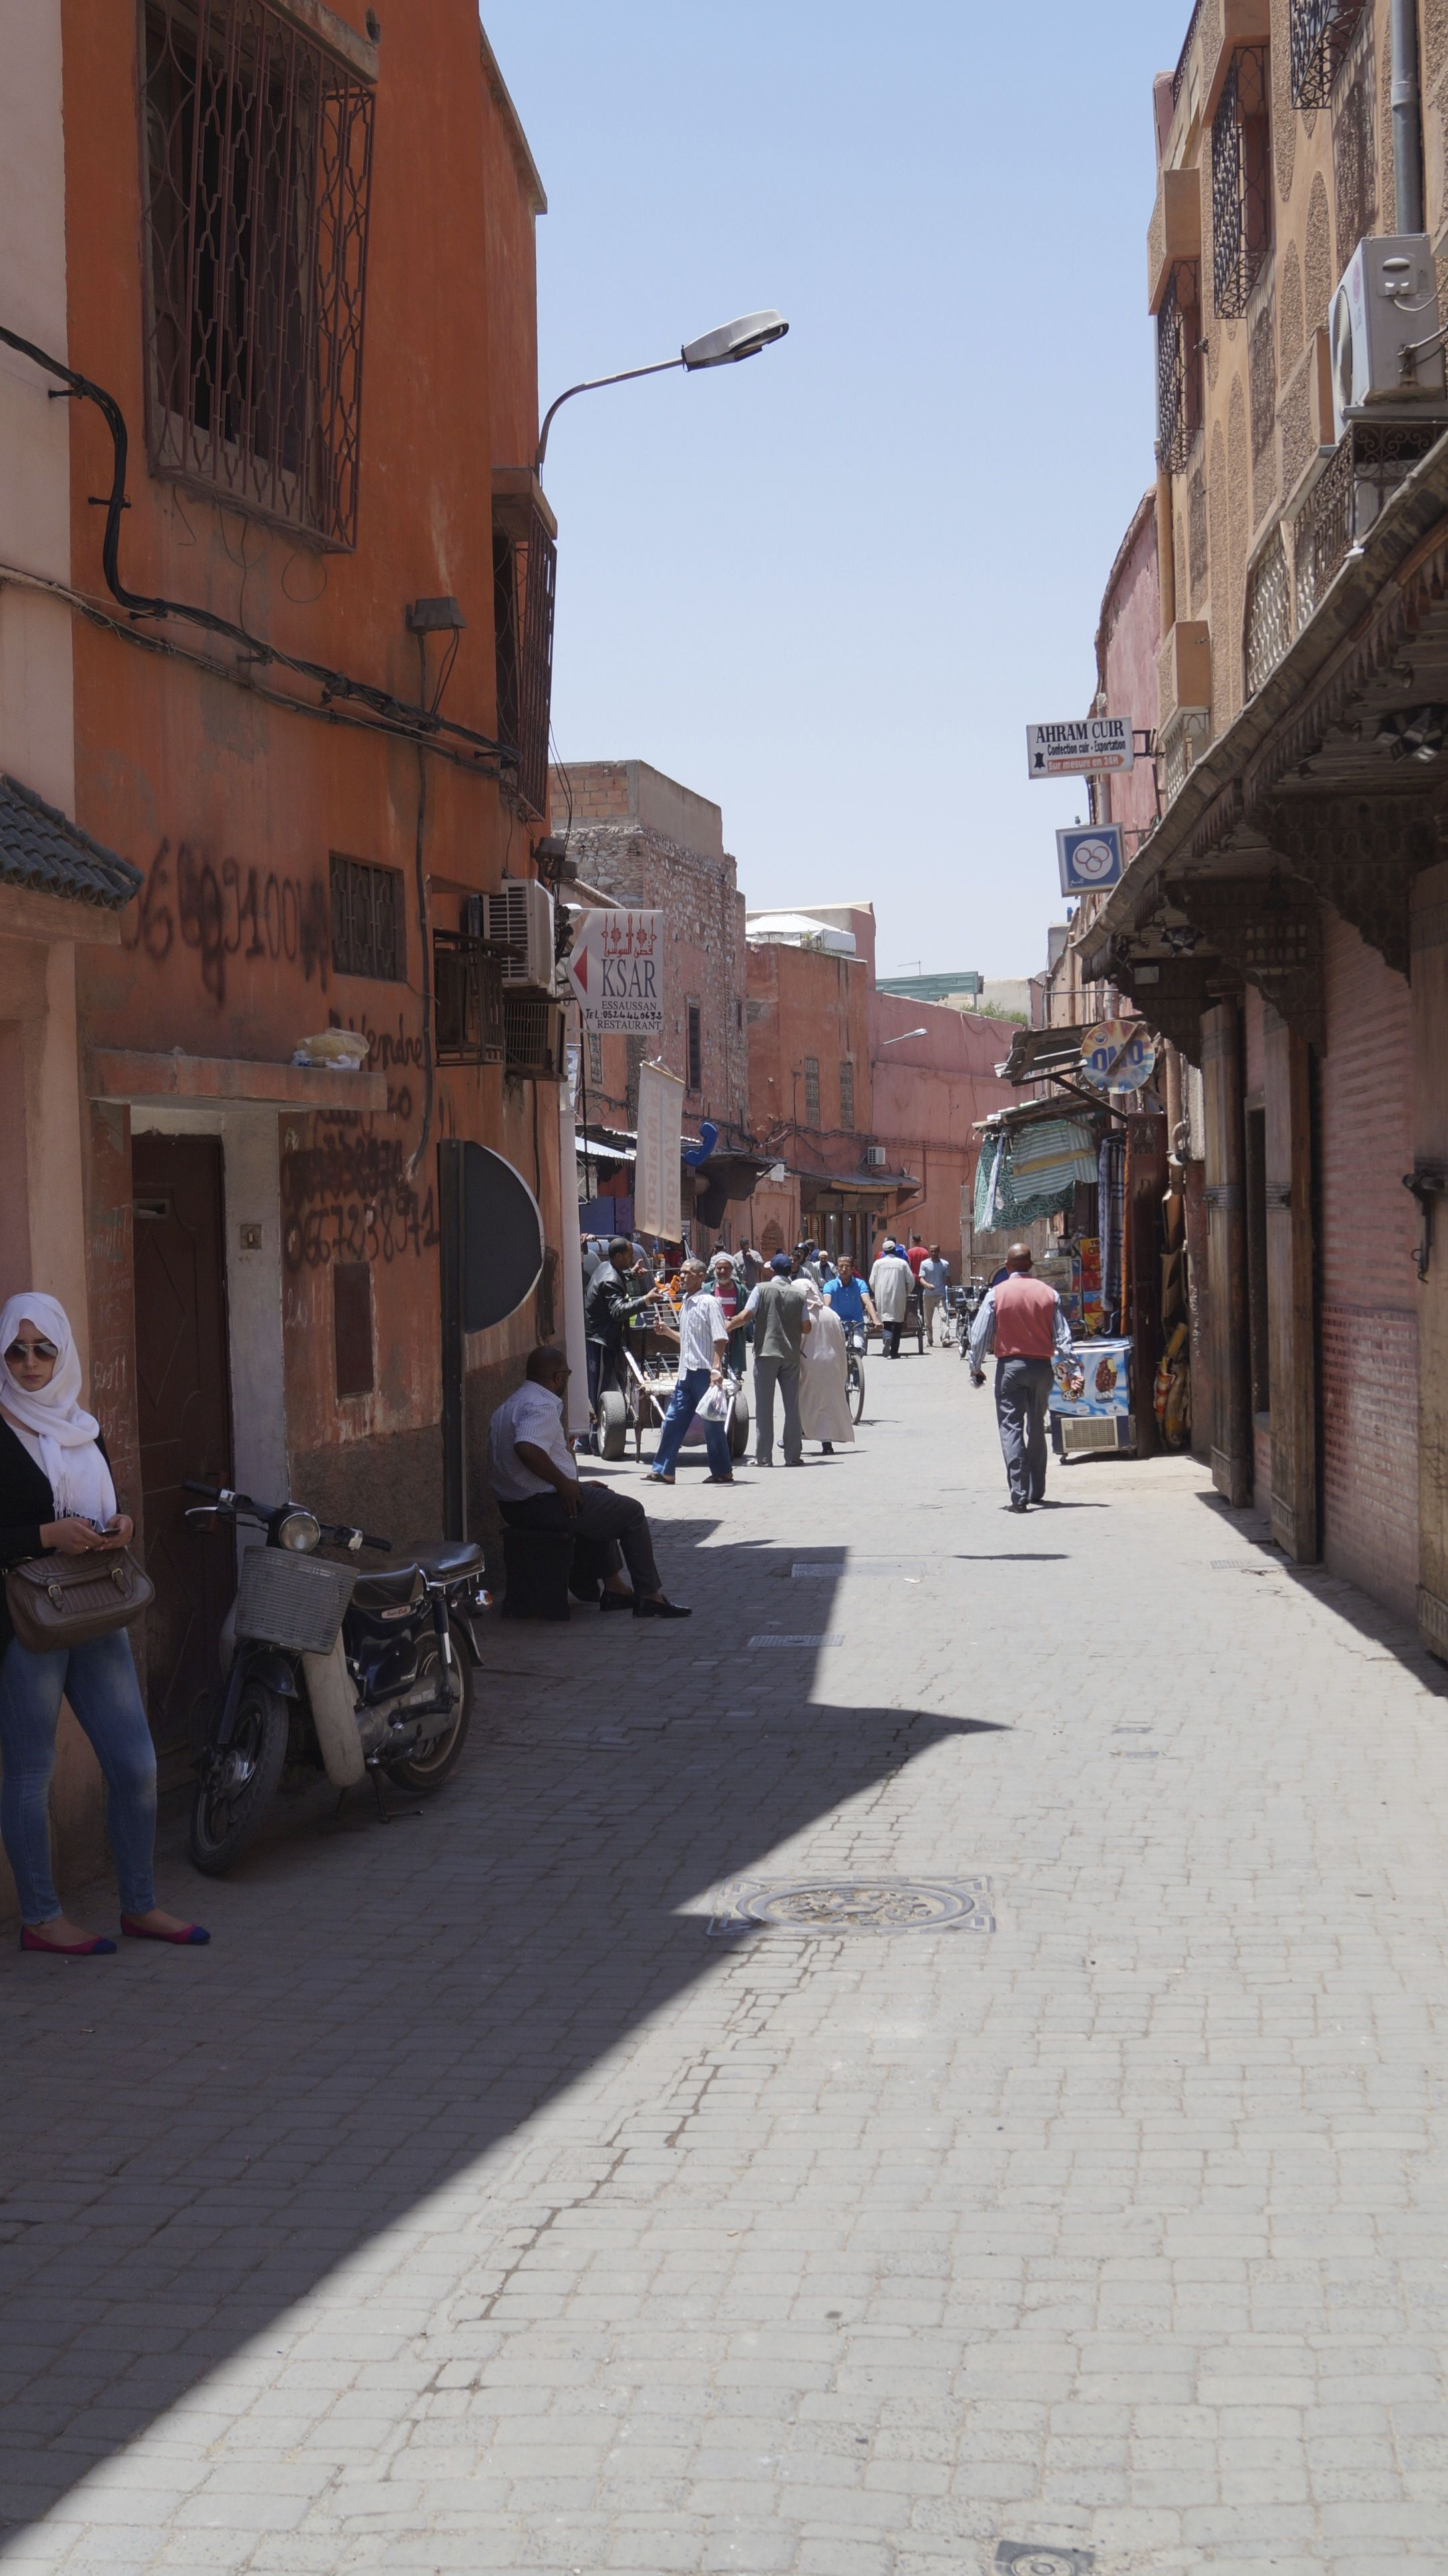 The medina is a walled city with extensive walled alleyway's from 6 to 9 meters providing many textures, light and shade with doorways to hidden treasure that exploring can only find as it is not offered!